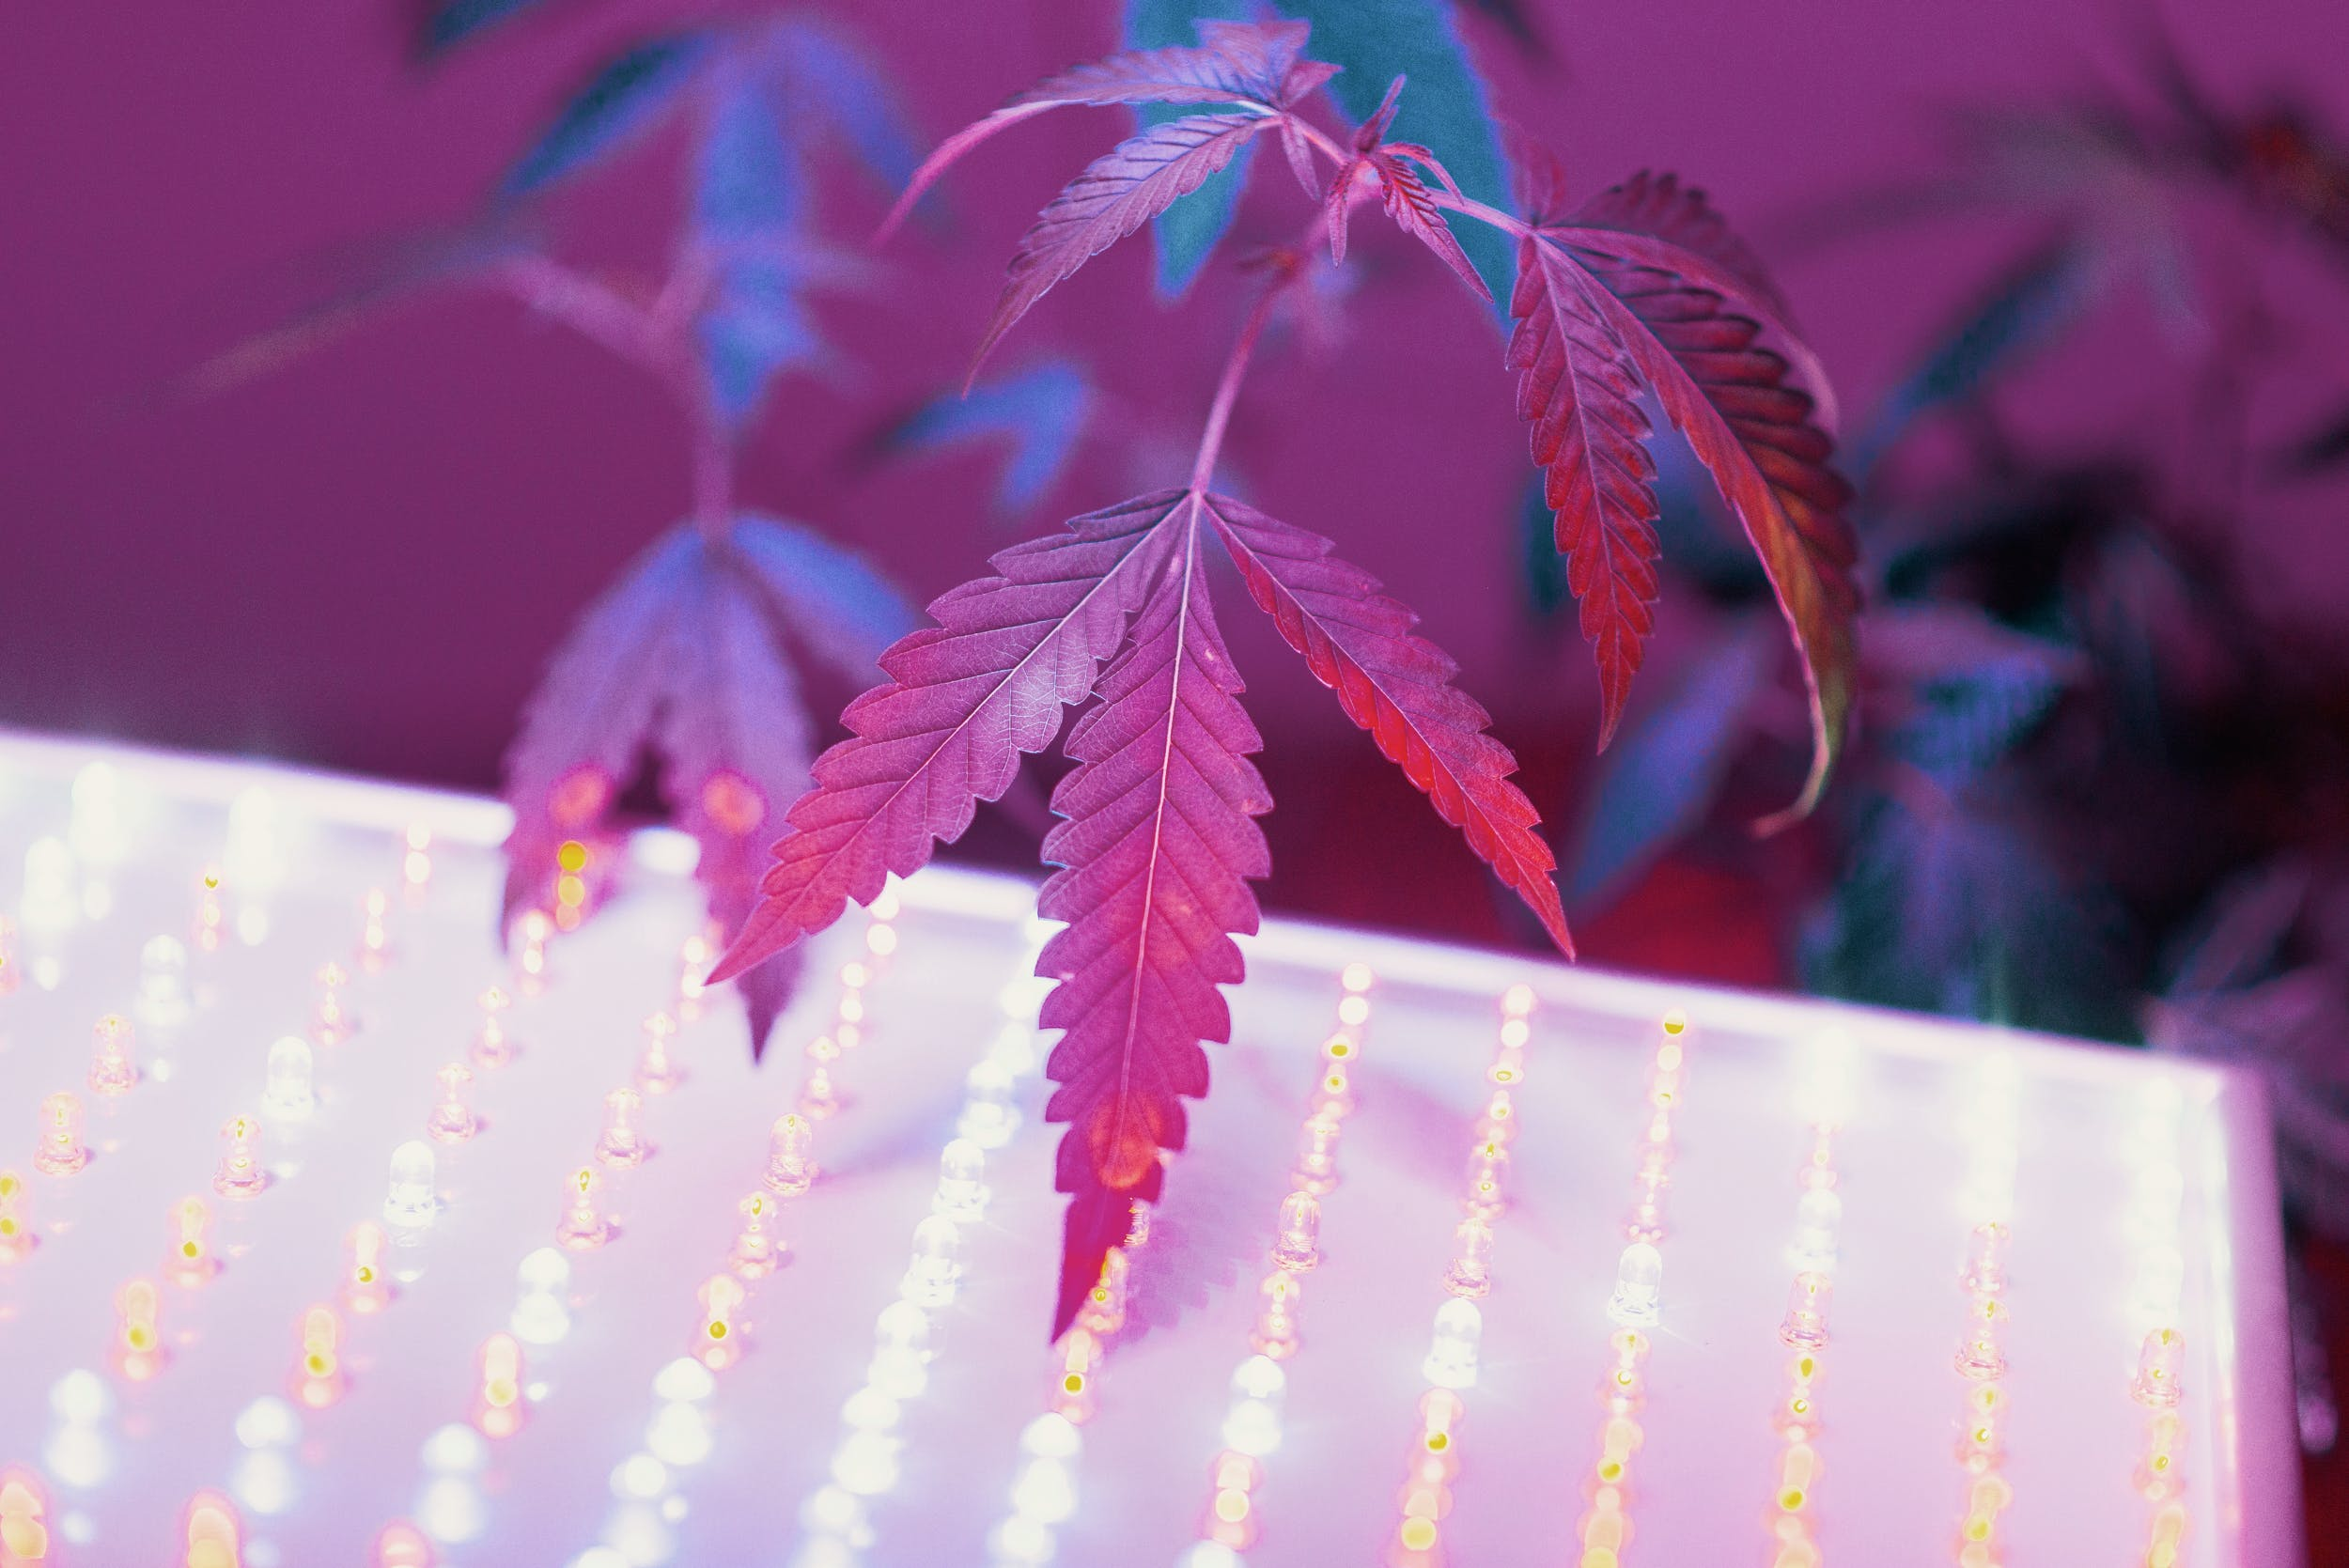 Best LED Grow Lights 31 These Are The Best LED Grow Lights For Big Yields and Healthy Plants